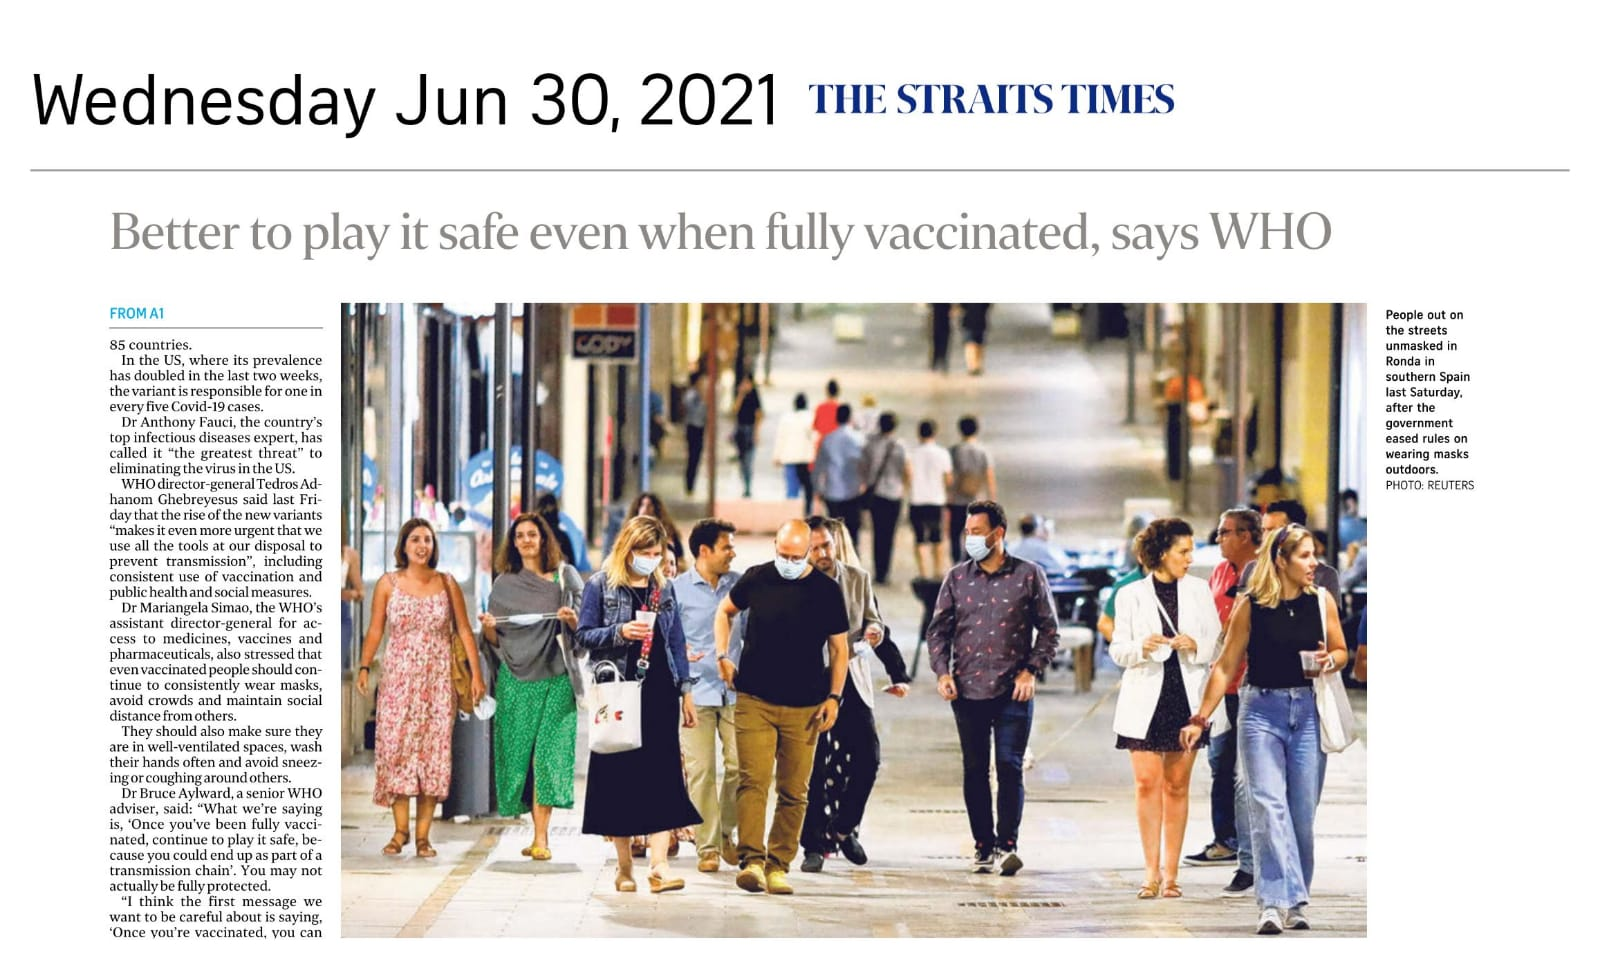 Better to Play It Safe Even When Fully Vaccinated, Says WHO - Published in The Straits Times June 30, 2021